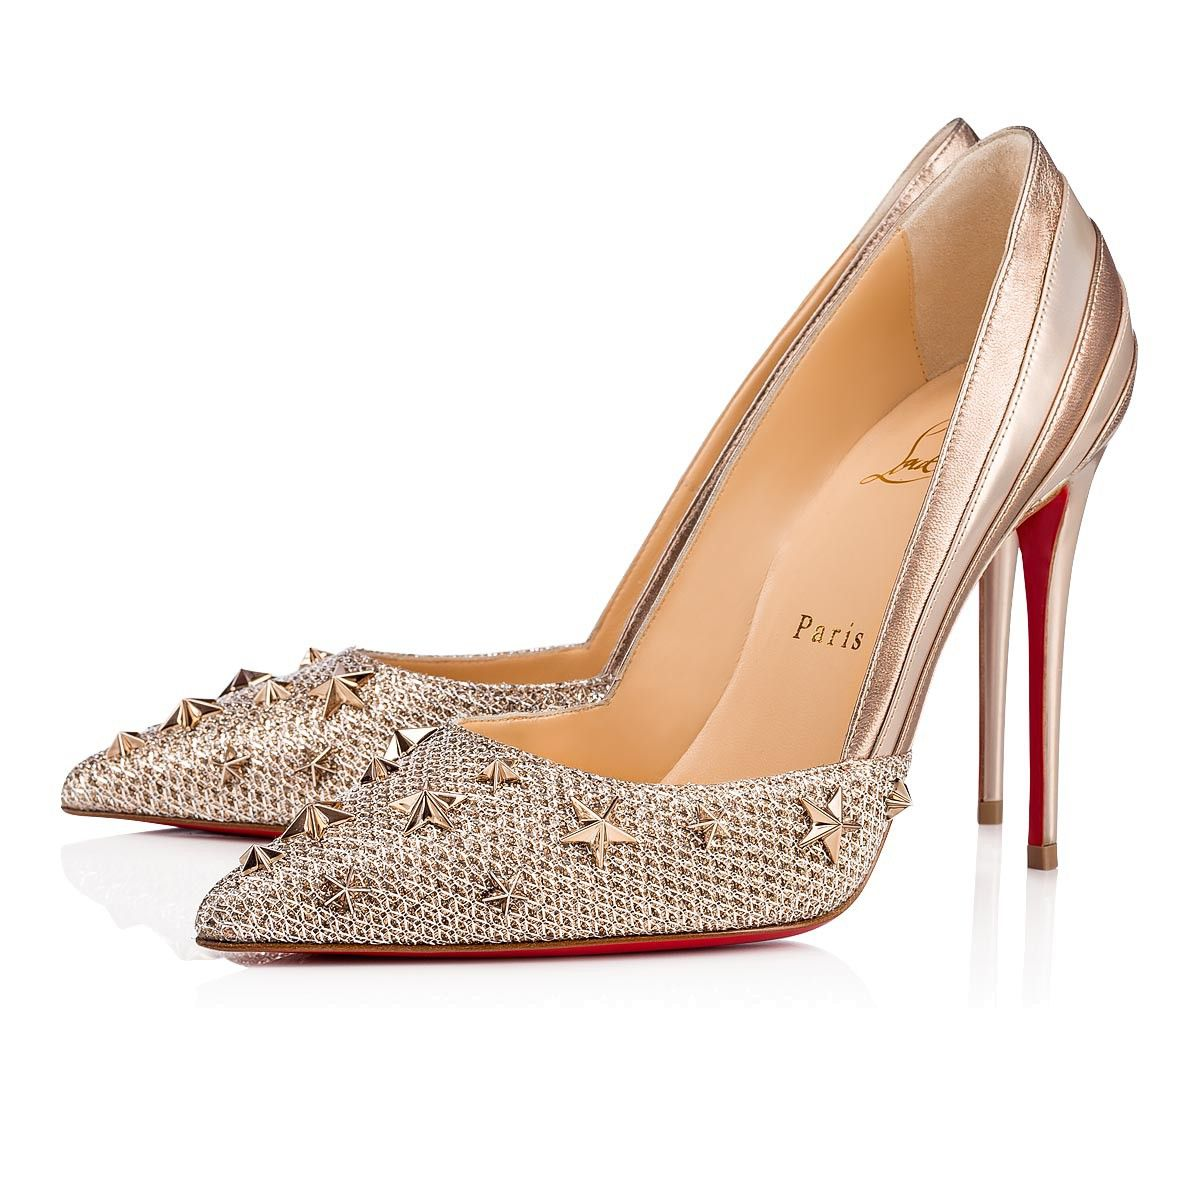 694f09e2e03 Pin by Iris Ntanakos on shoes Christian Louboutin | Christian ...